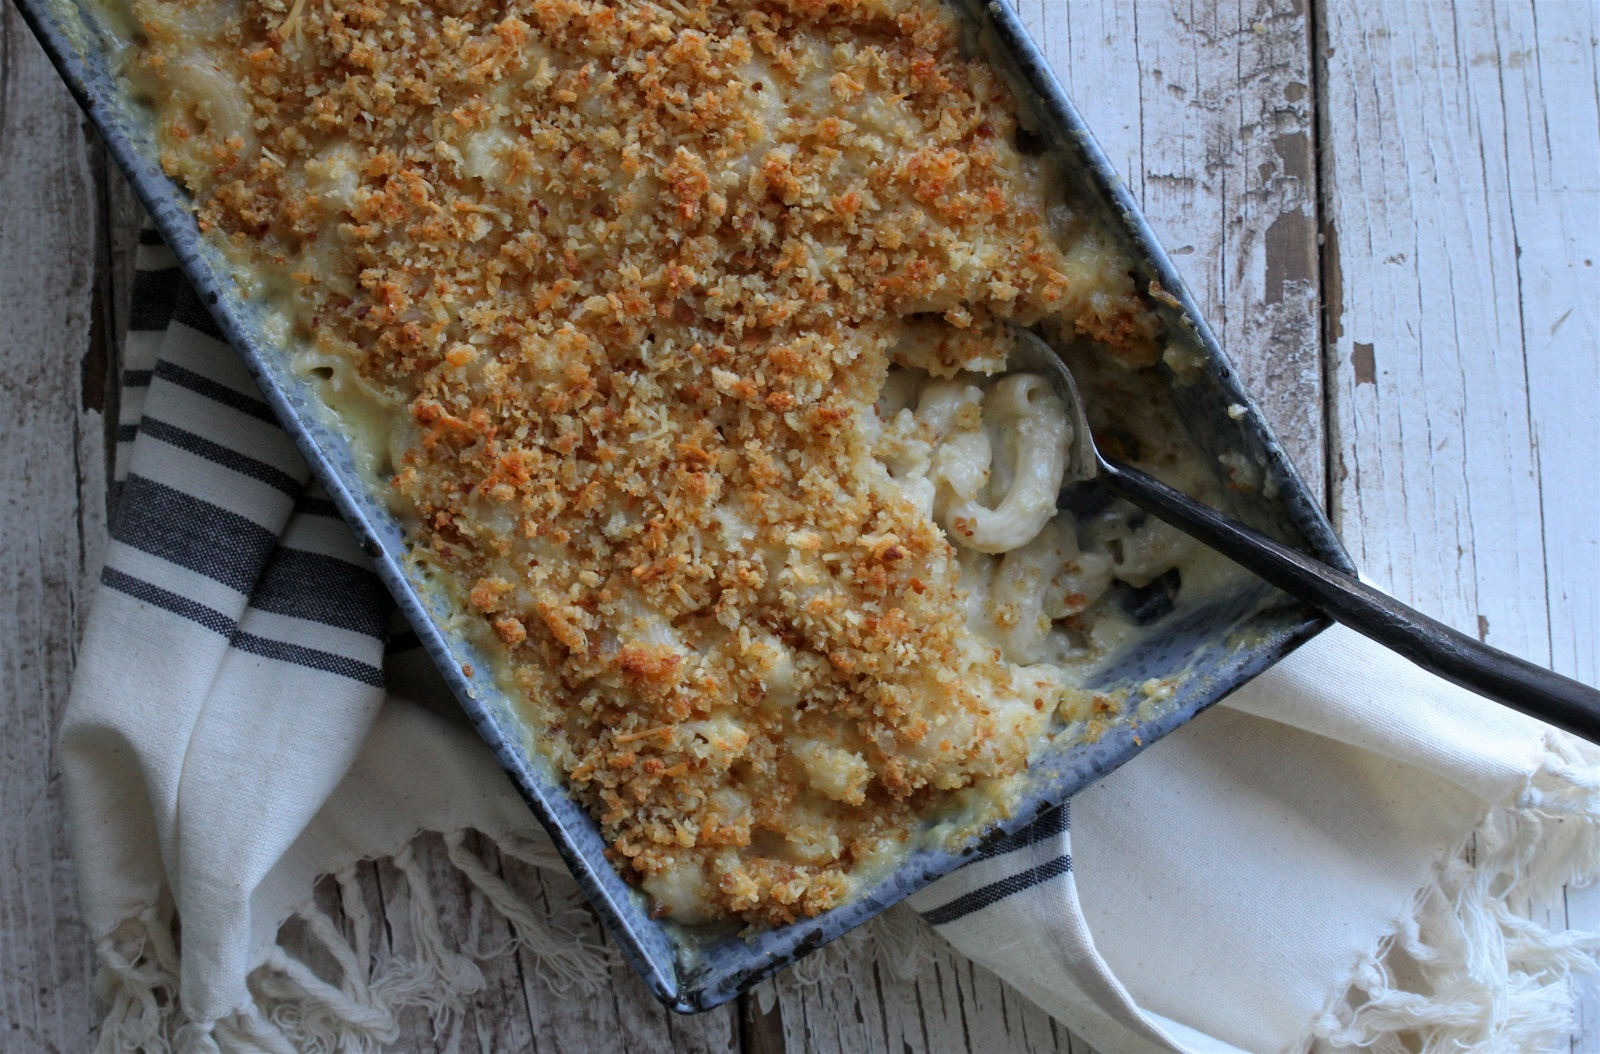 glutenfree mac & cheese